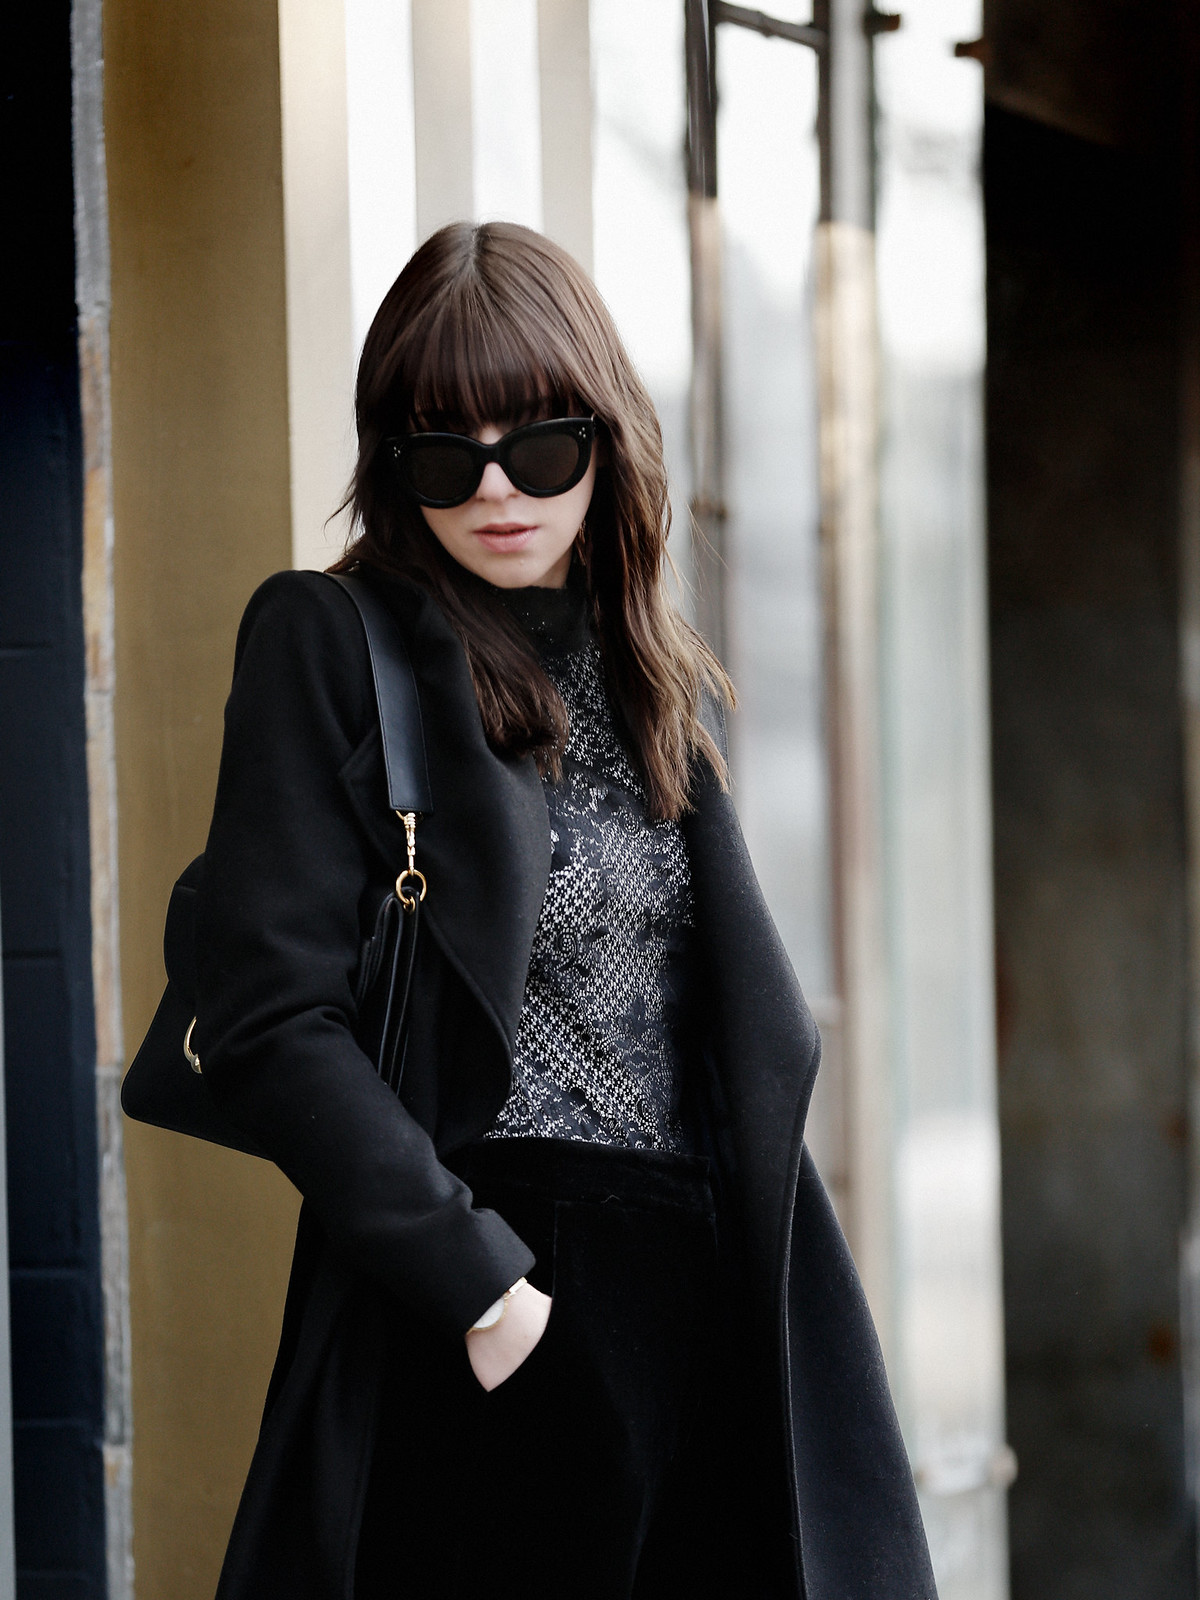 outfit black vila lace coat winter berlin j.w.anderson pierce bag céline audrey sunglasses minimal allblack clean minimal styling lookbook cats & dogs fashionblog ricarda schernus modeblogger düsseldorf 5